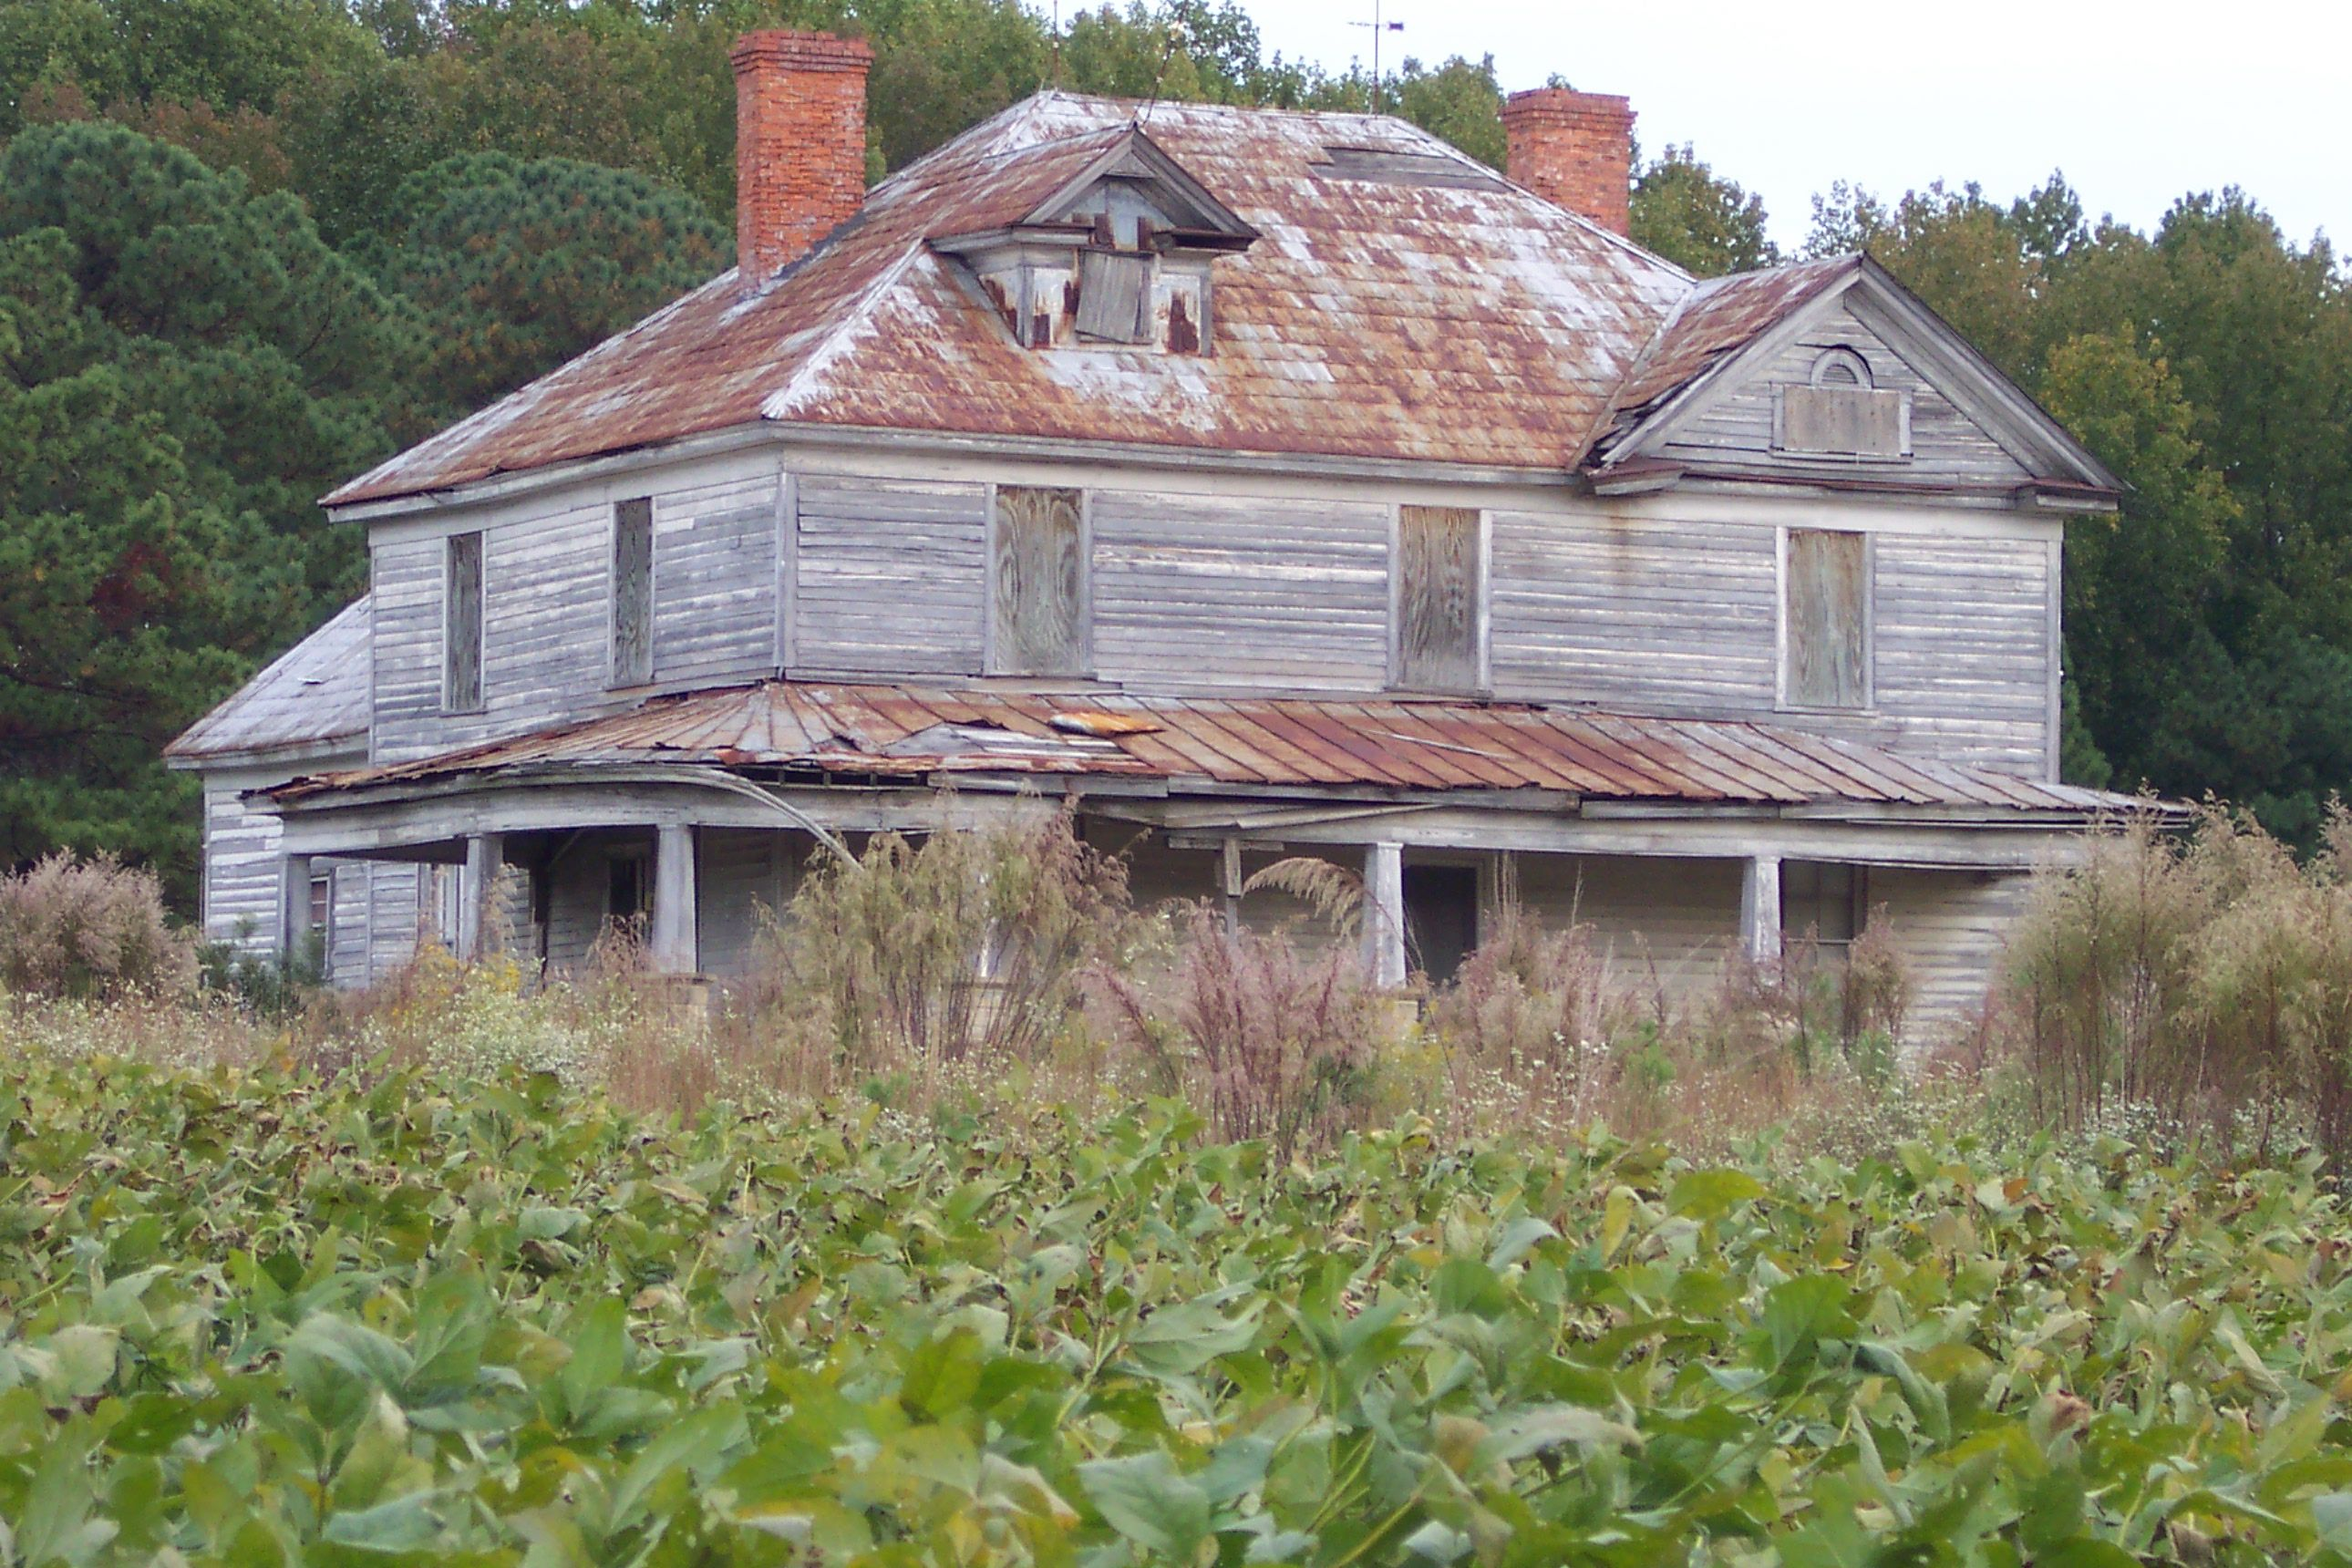 Mysterious old farmhouse just off Hywy 55 at Apex, NC ...